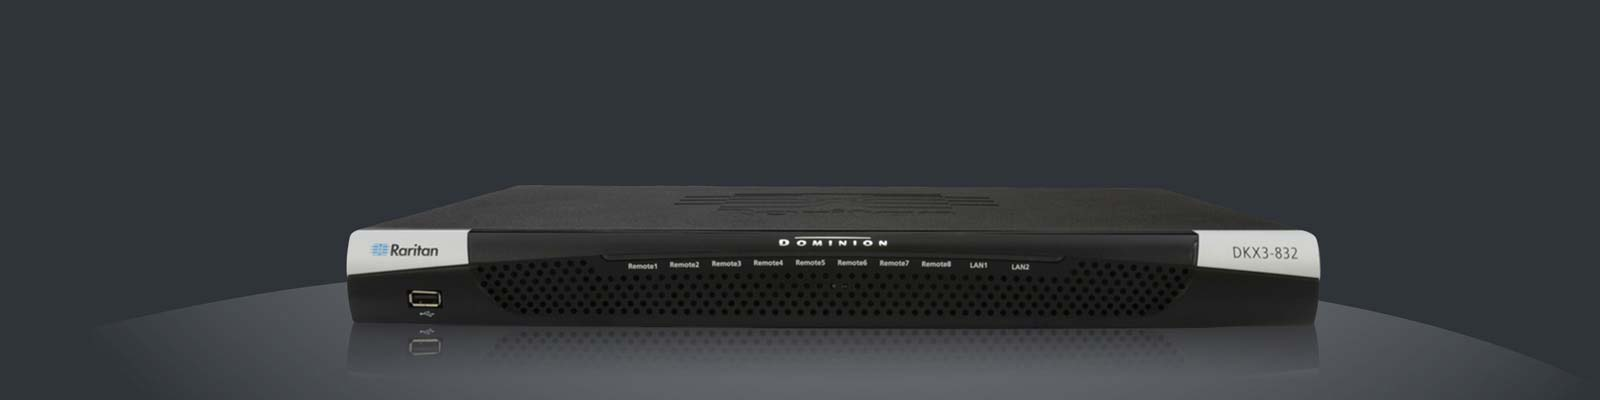 Raritan Dominion DKX3 8 User, 8 Port, 32 Port or 64 Port CAT5 KVM Over IP Switch